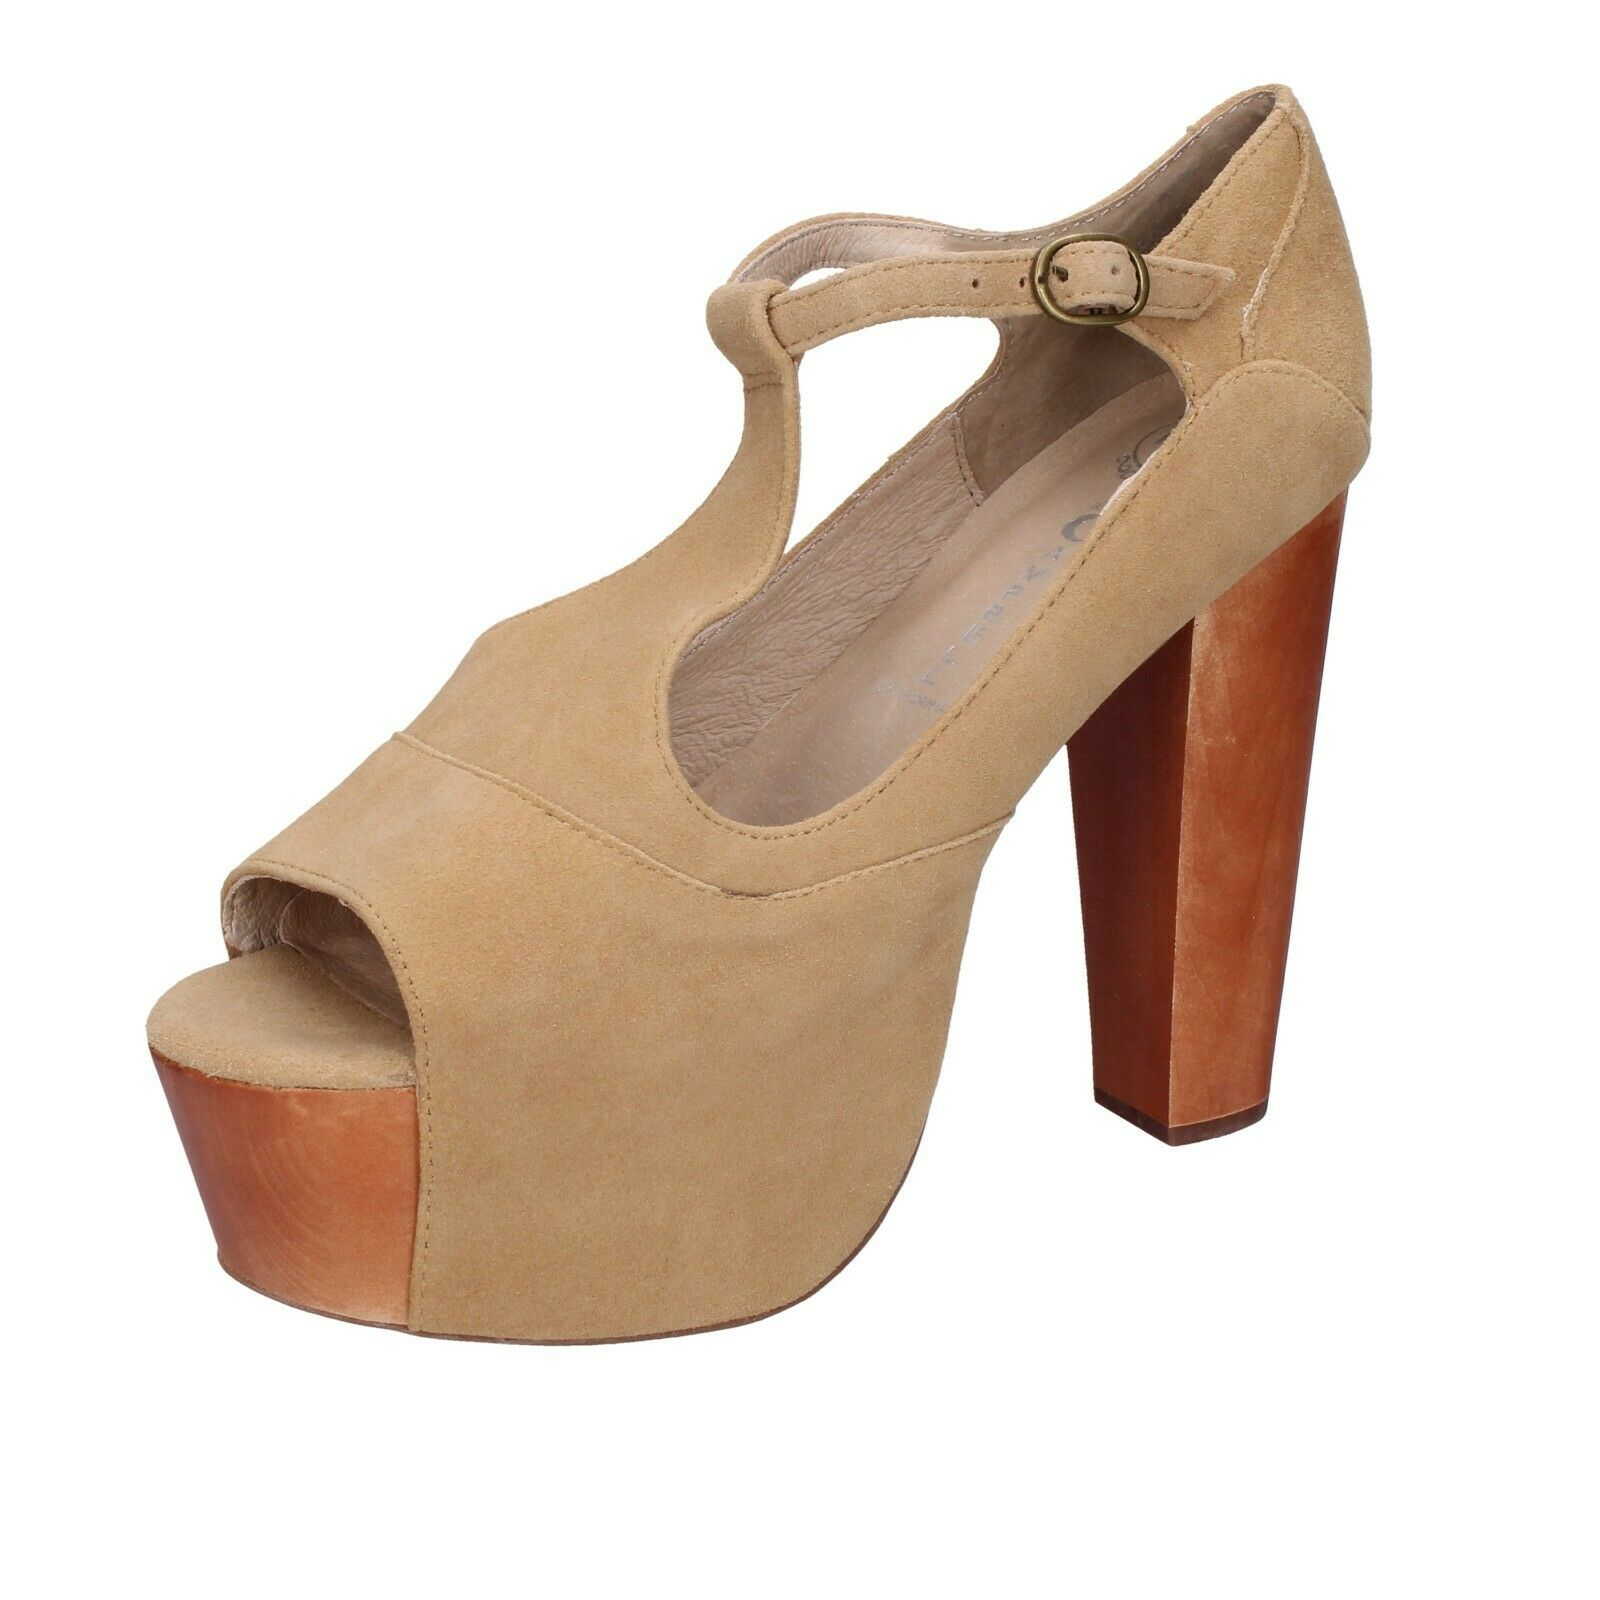 Women& 039;s shoes JEFFREY CAMPBELL 10 (EU 40) sandals beige suede AH554-40